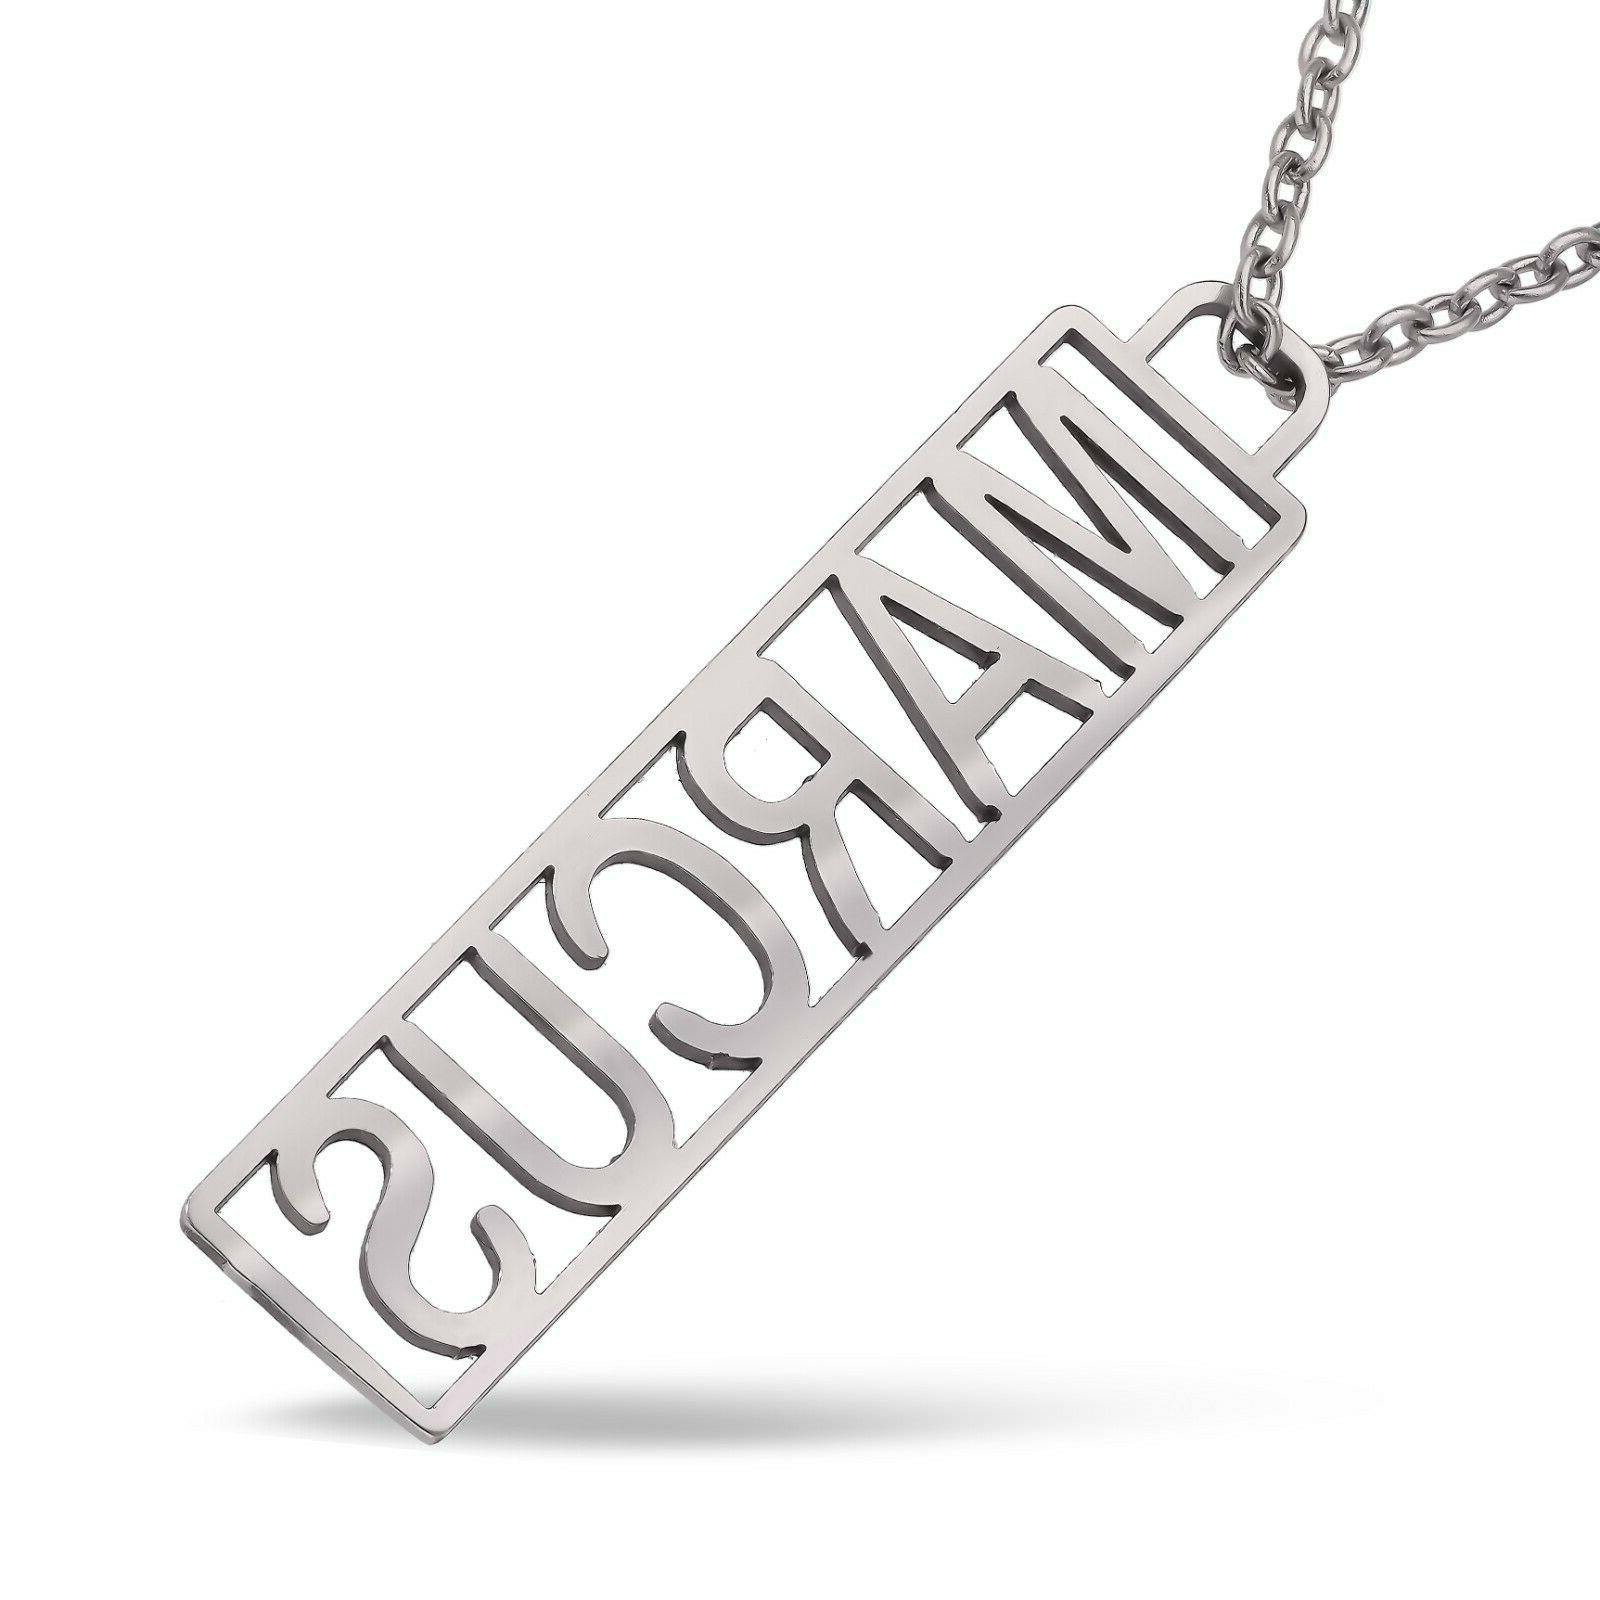 Men's Personalized Gift Name Necklace Gent's Dog Tag Stainle